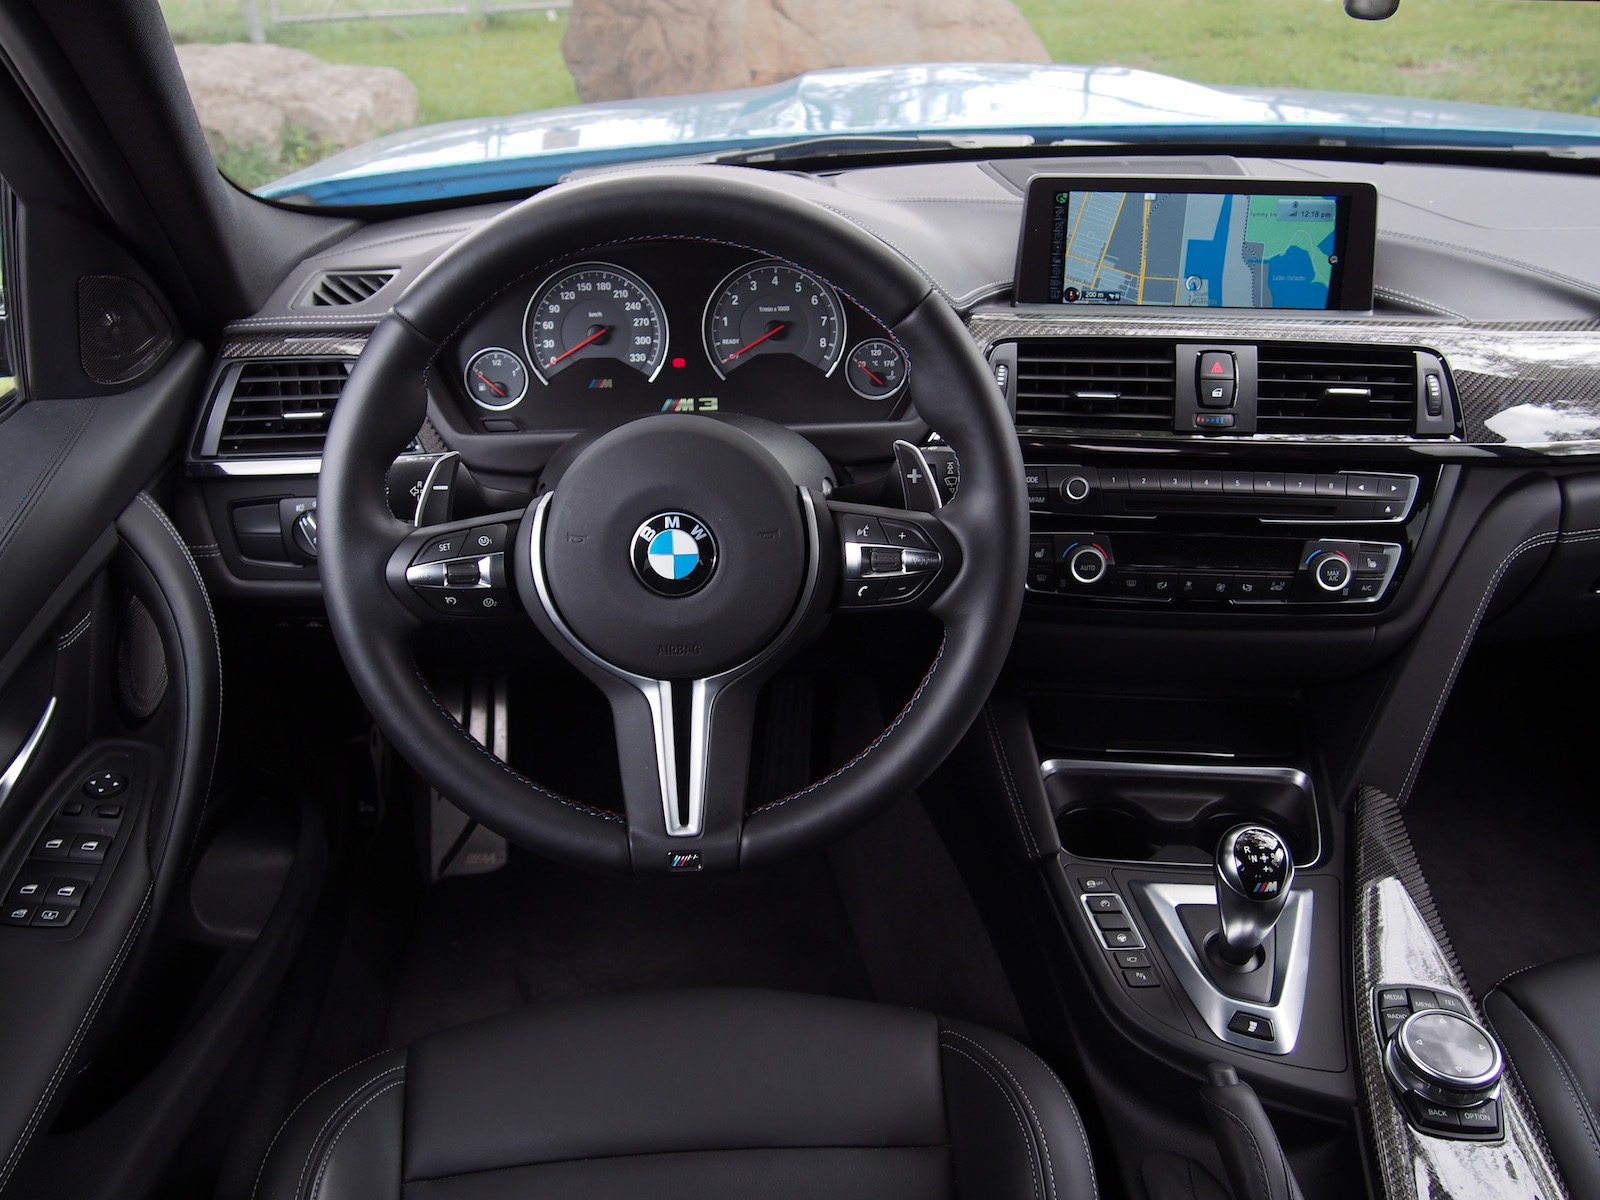 Bmw E46 M3 Interior Save Our Oceans